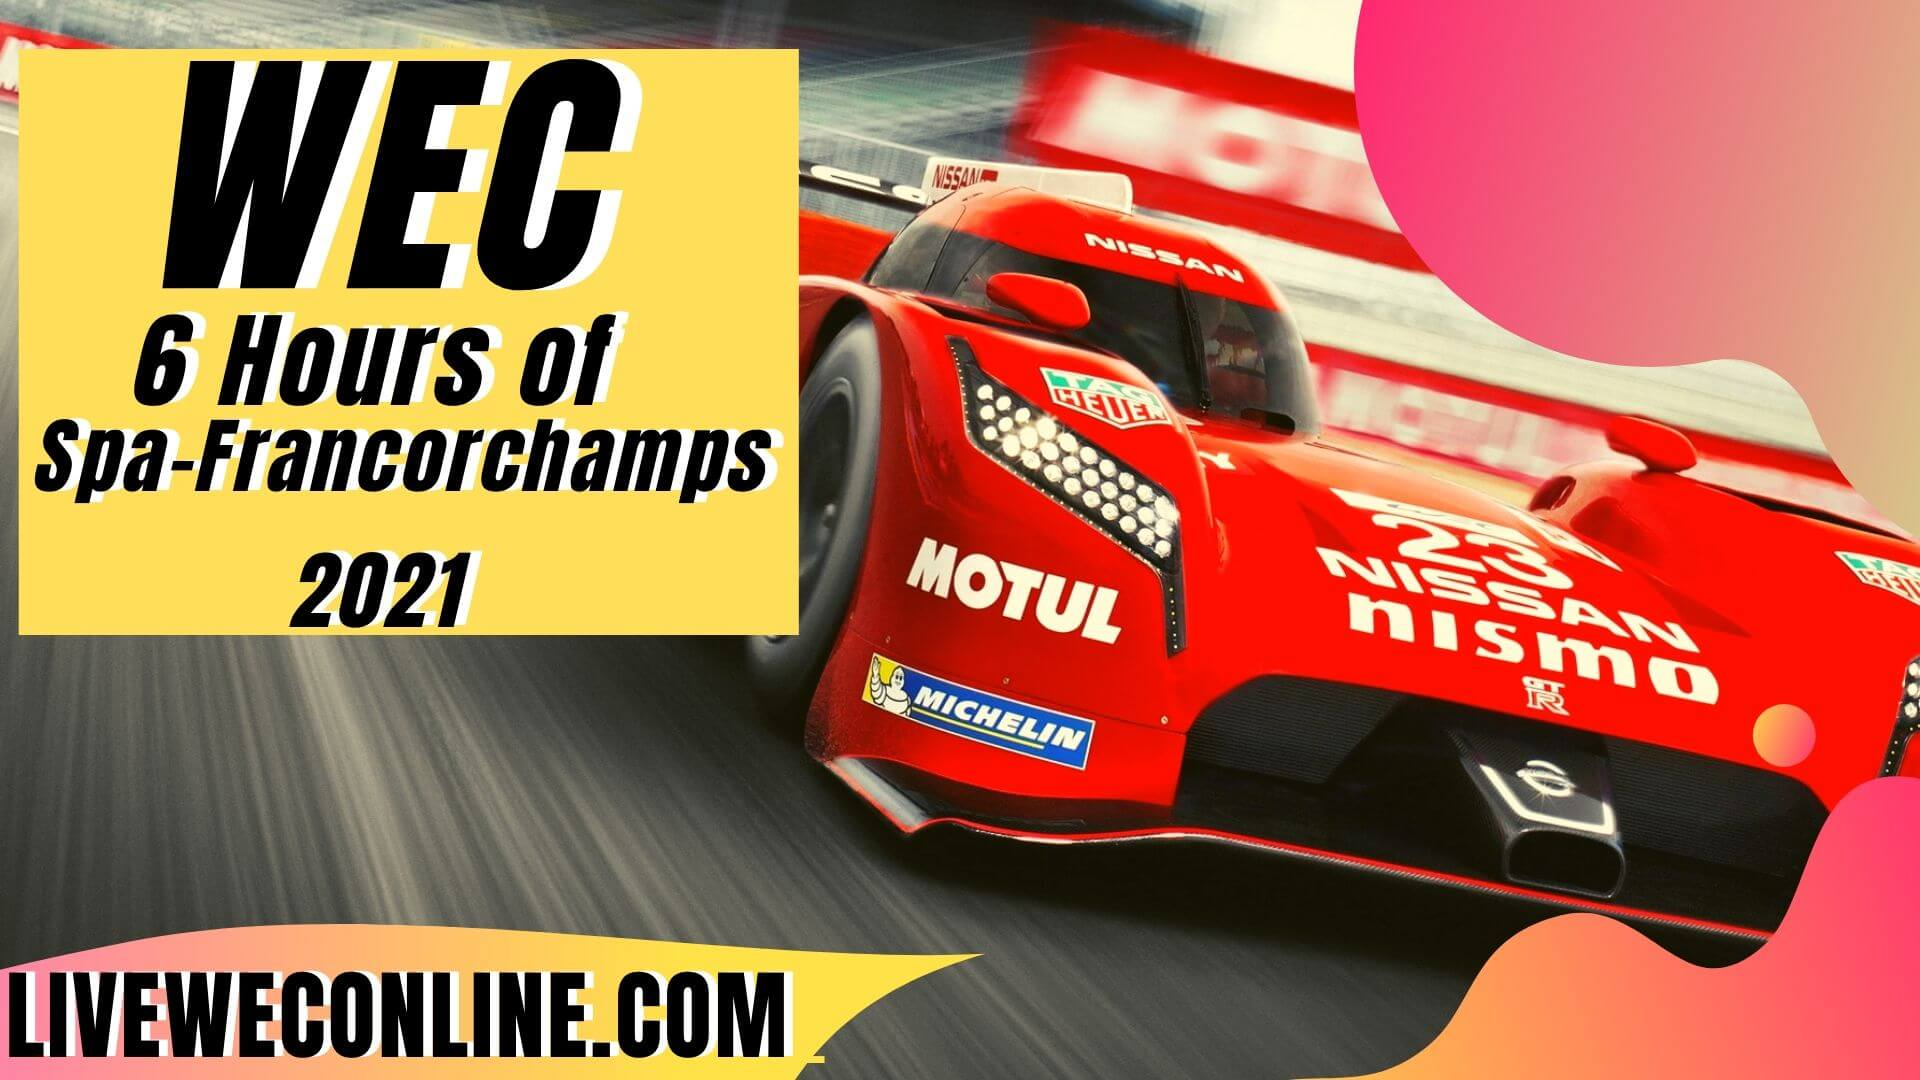 6 Hours of Spa Francorchamps Live Stream 2021 | WEC